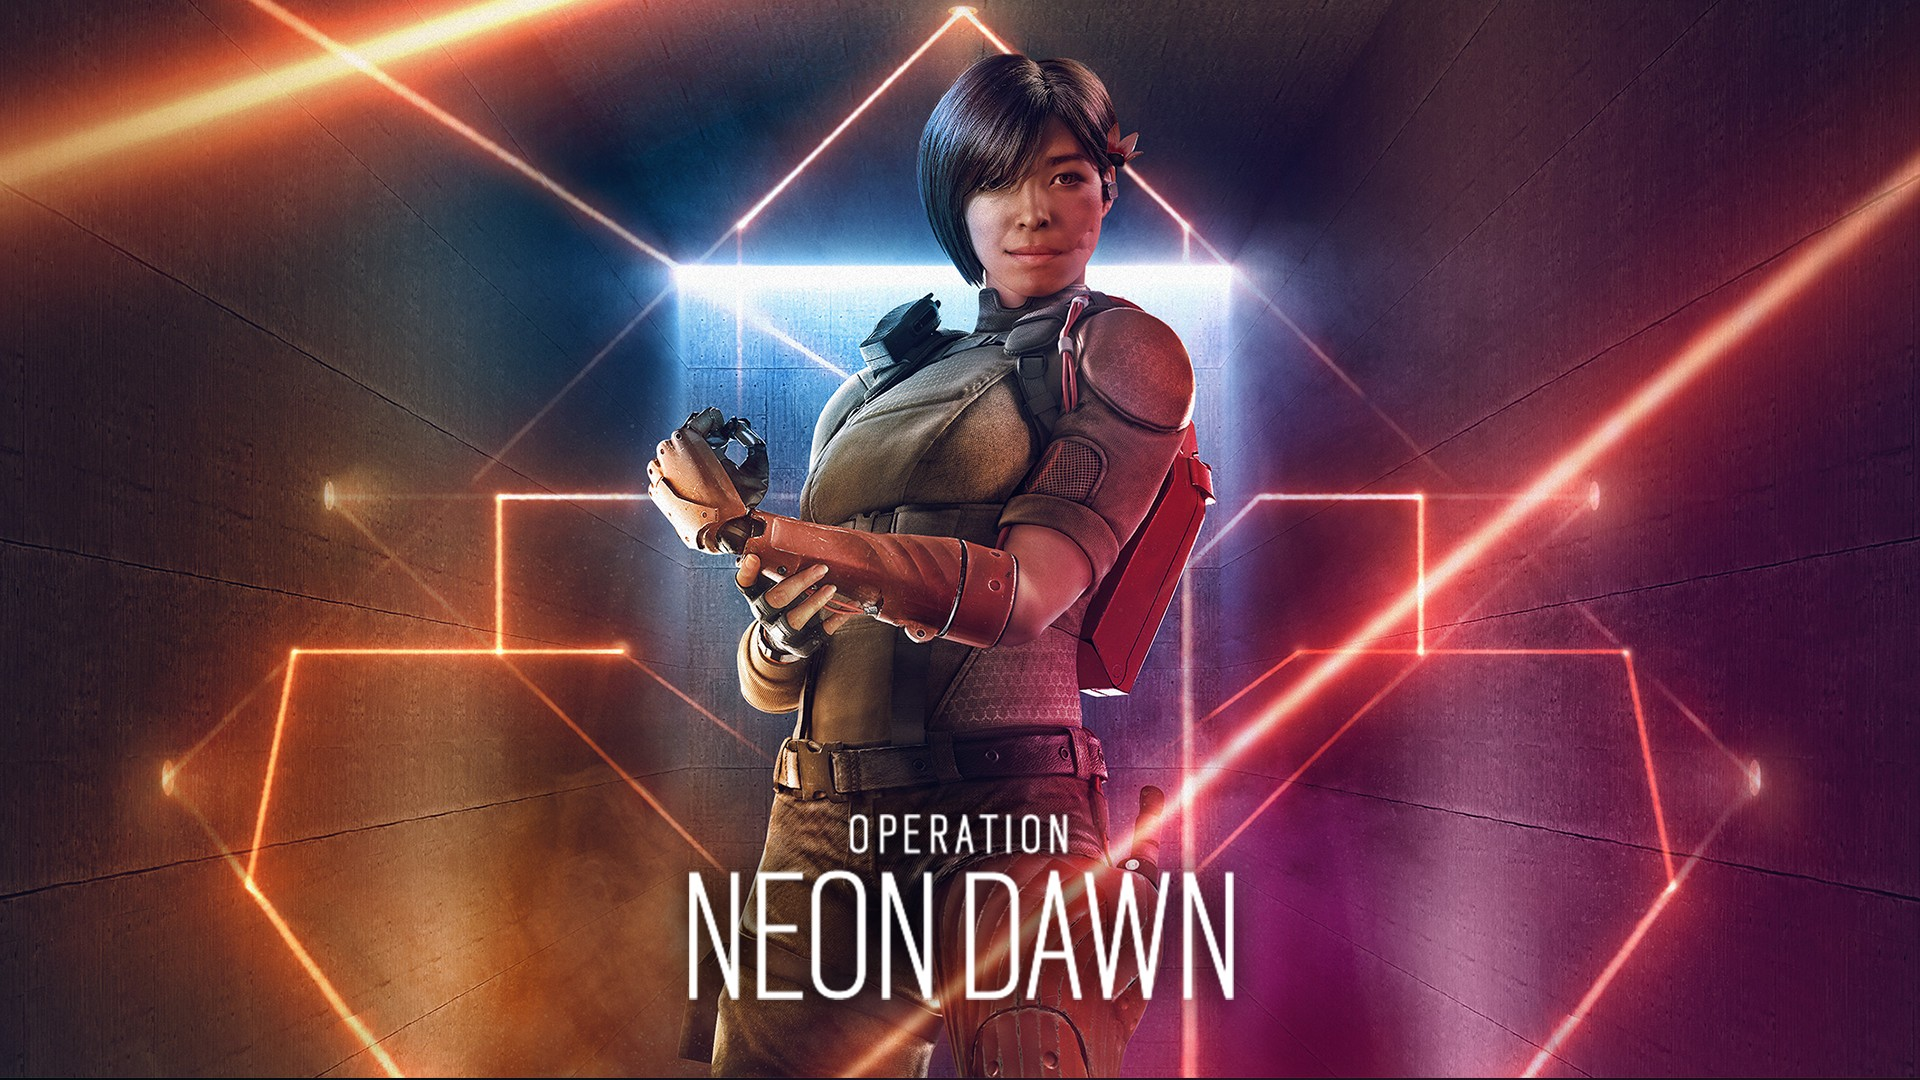 Rainbow Six Siege Xbox Series X|S & PlayStation 5 Versions Are Now Available, Alongside Operation Neon Dawn Launch